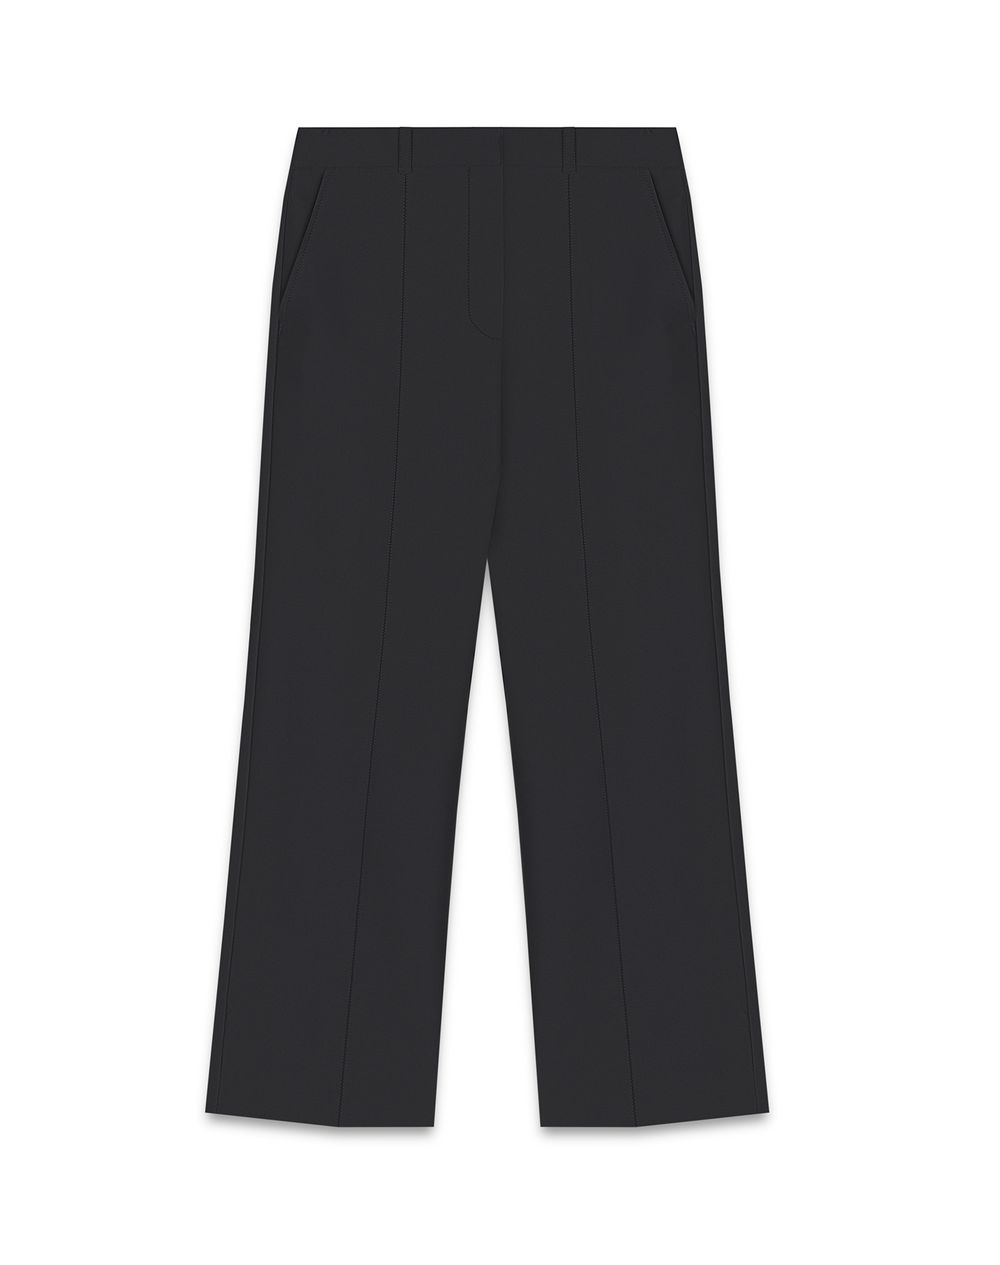 SATIN-EFFECT TAILORED PANTS - Lanvin